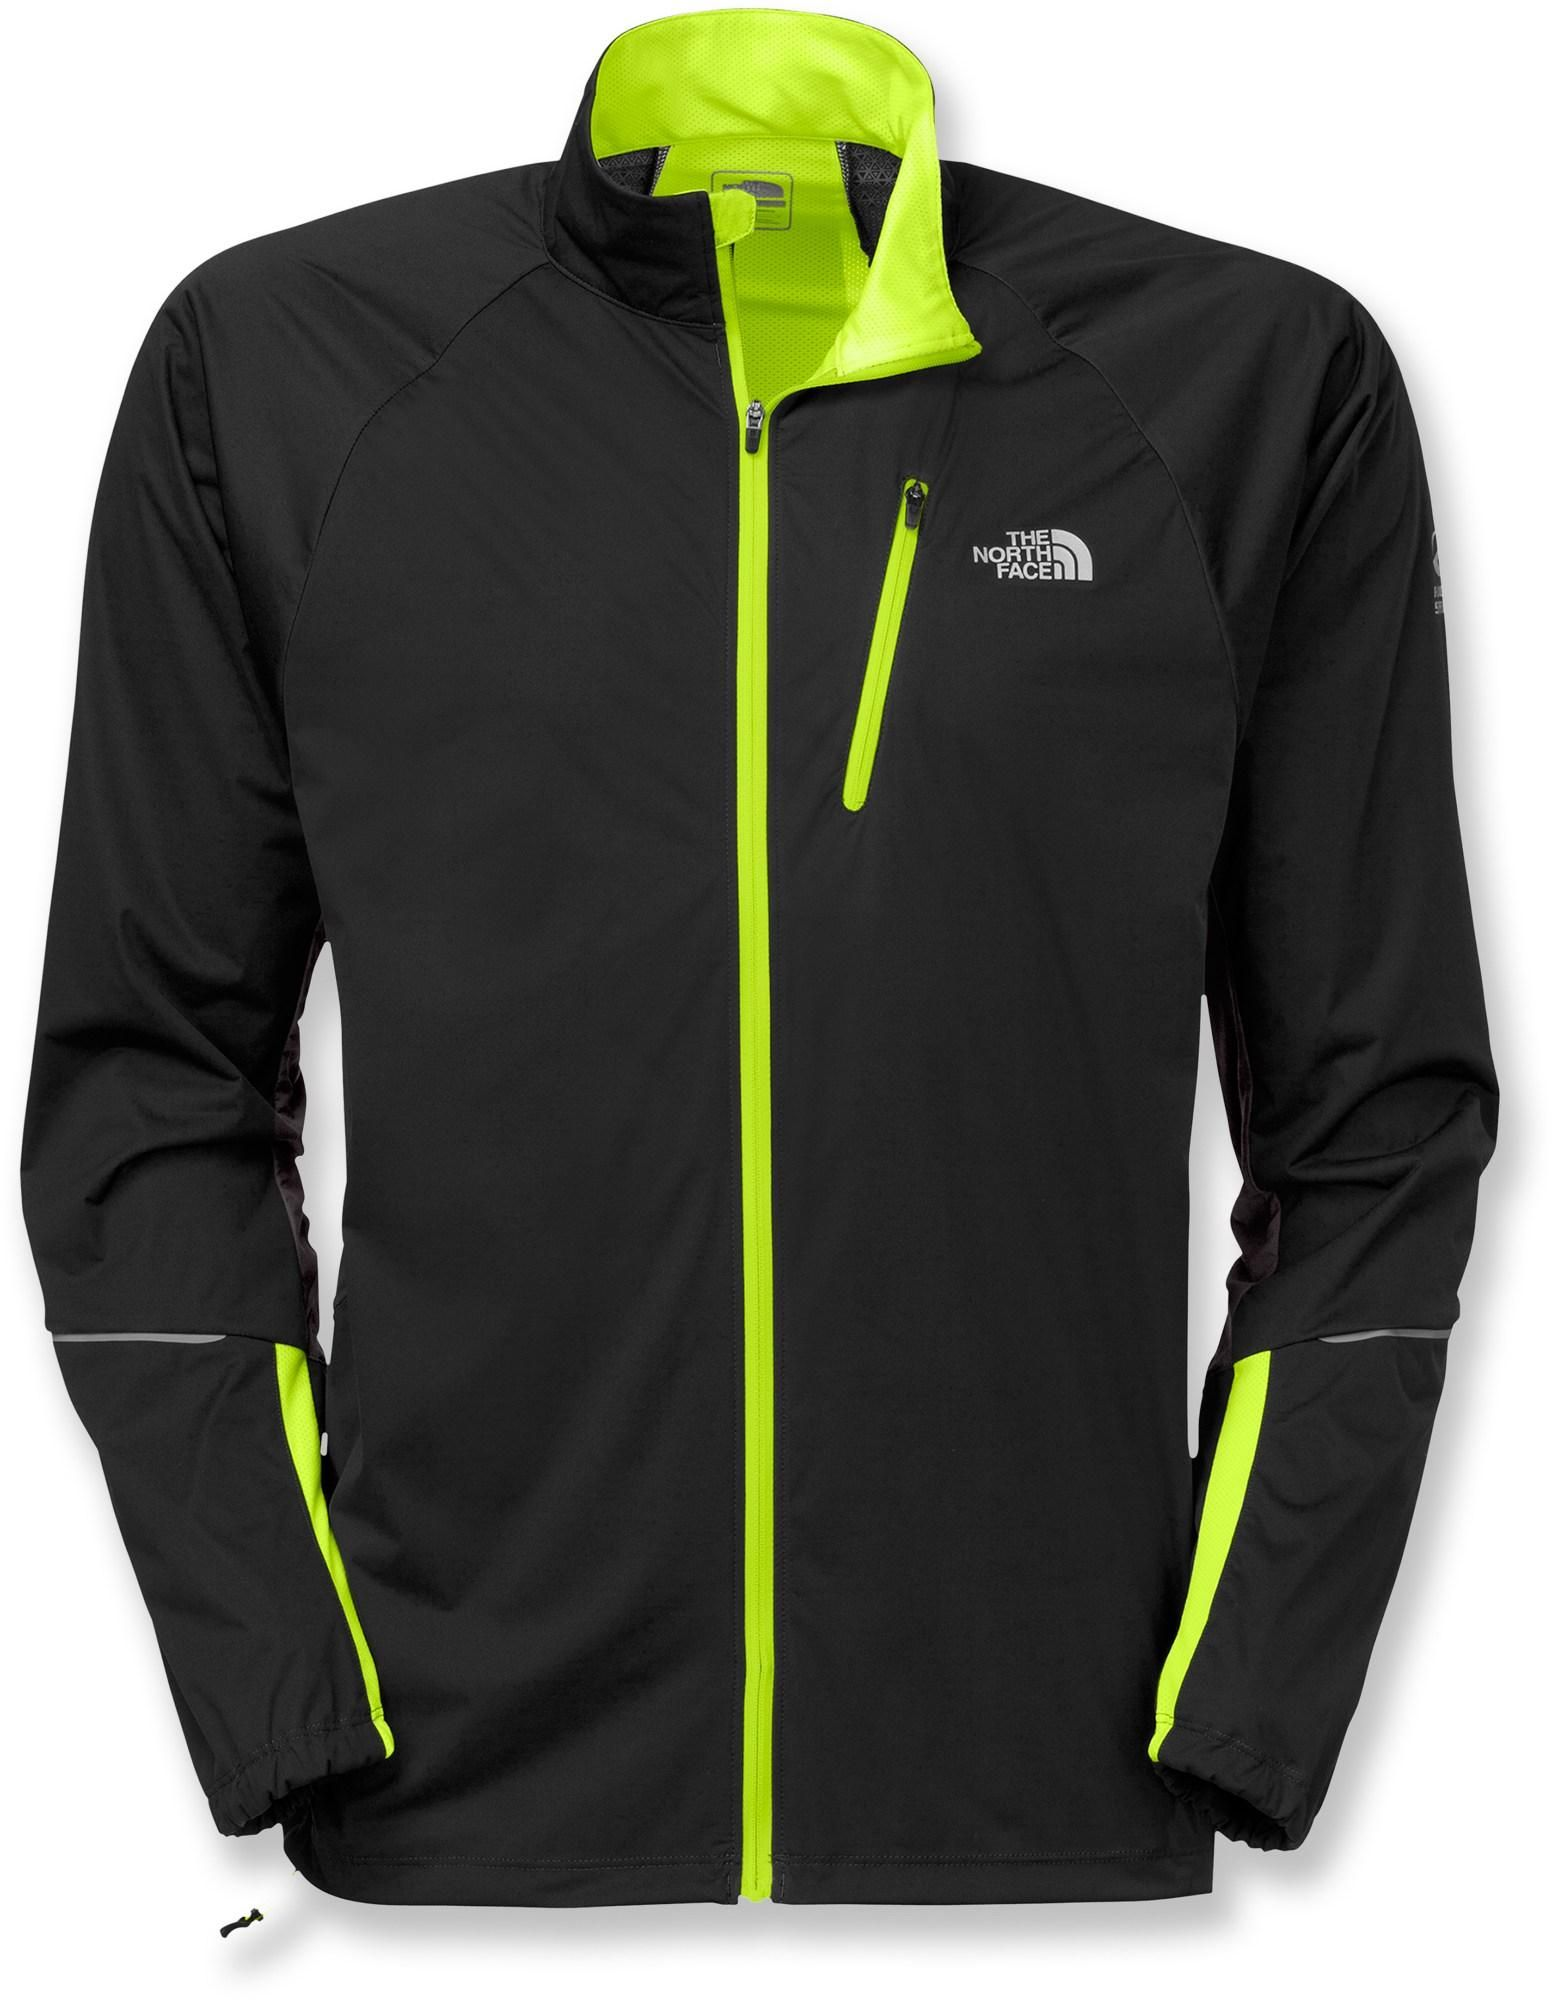 6a2f22bd6 For cool-morning workouts don the Men's The North Face Apex Lite ...